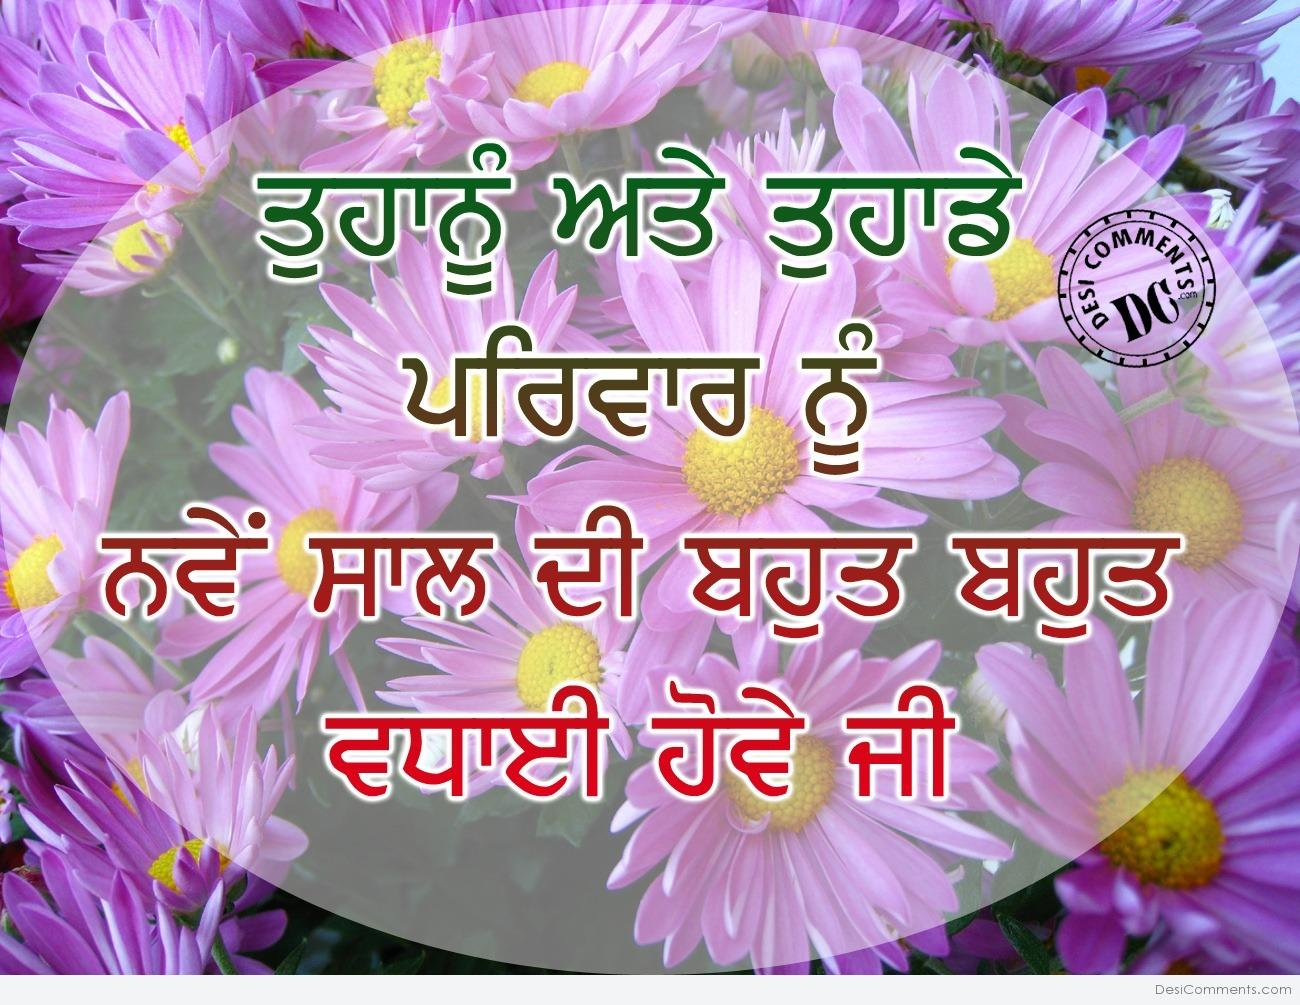 New Year Wishes In Punjabi Desicomments